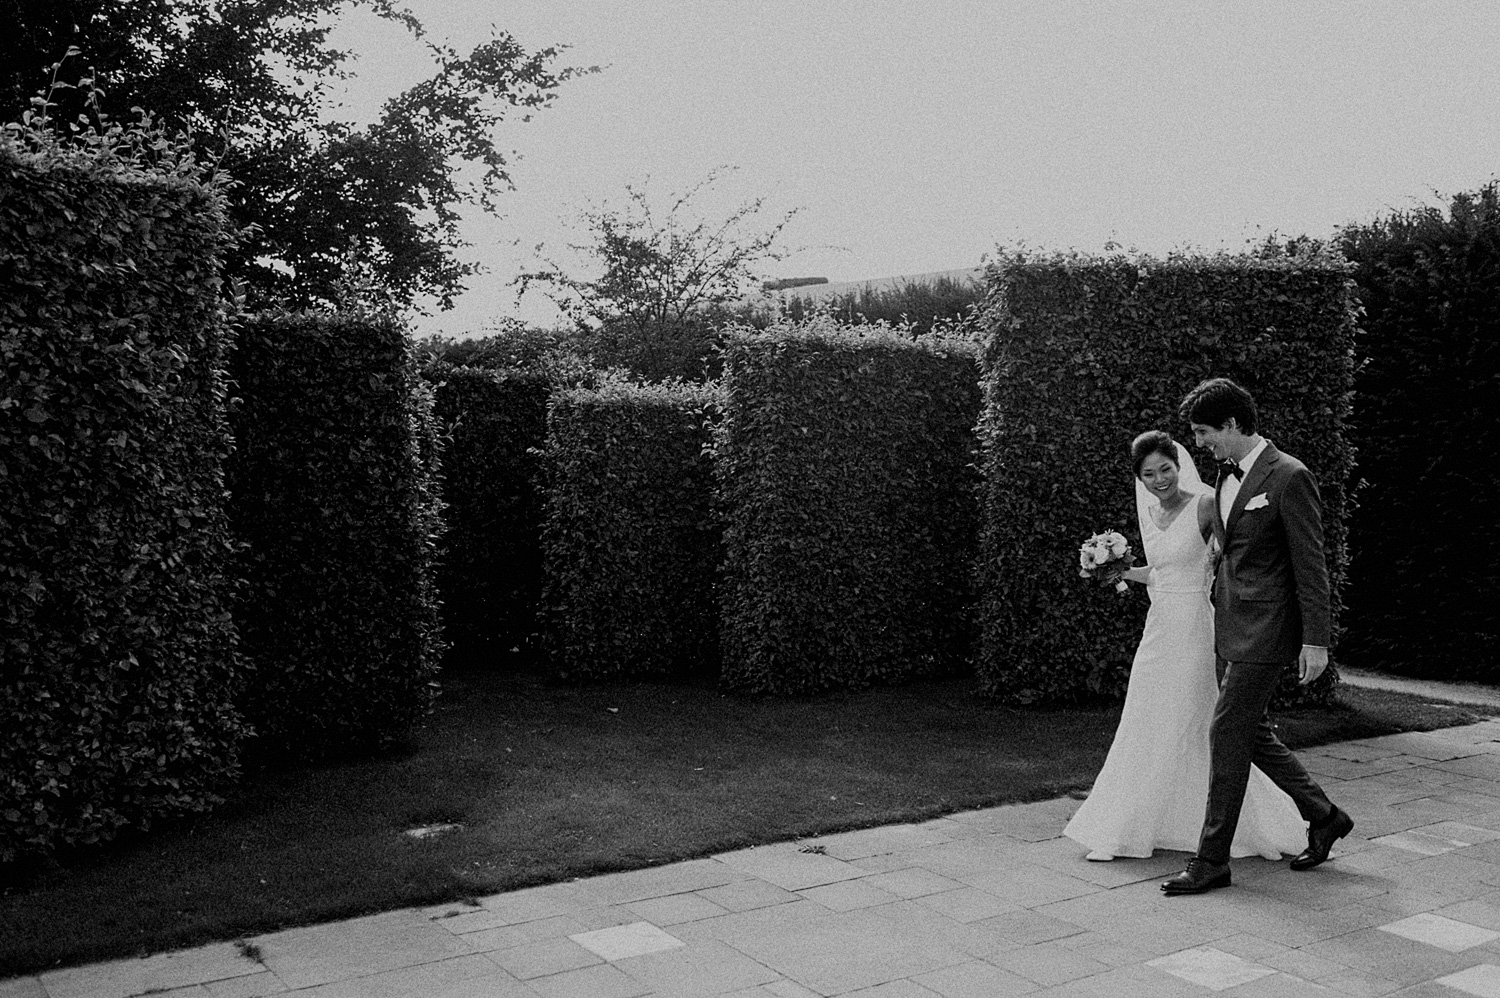 089-sjoerdbooijphotography-wedding-nard-joming.jpg